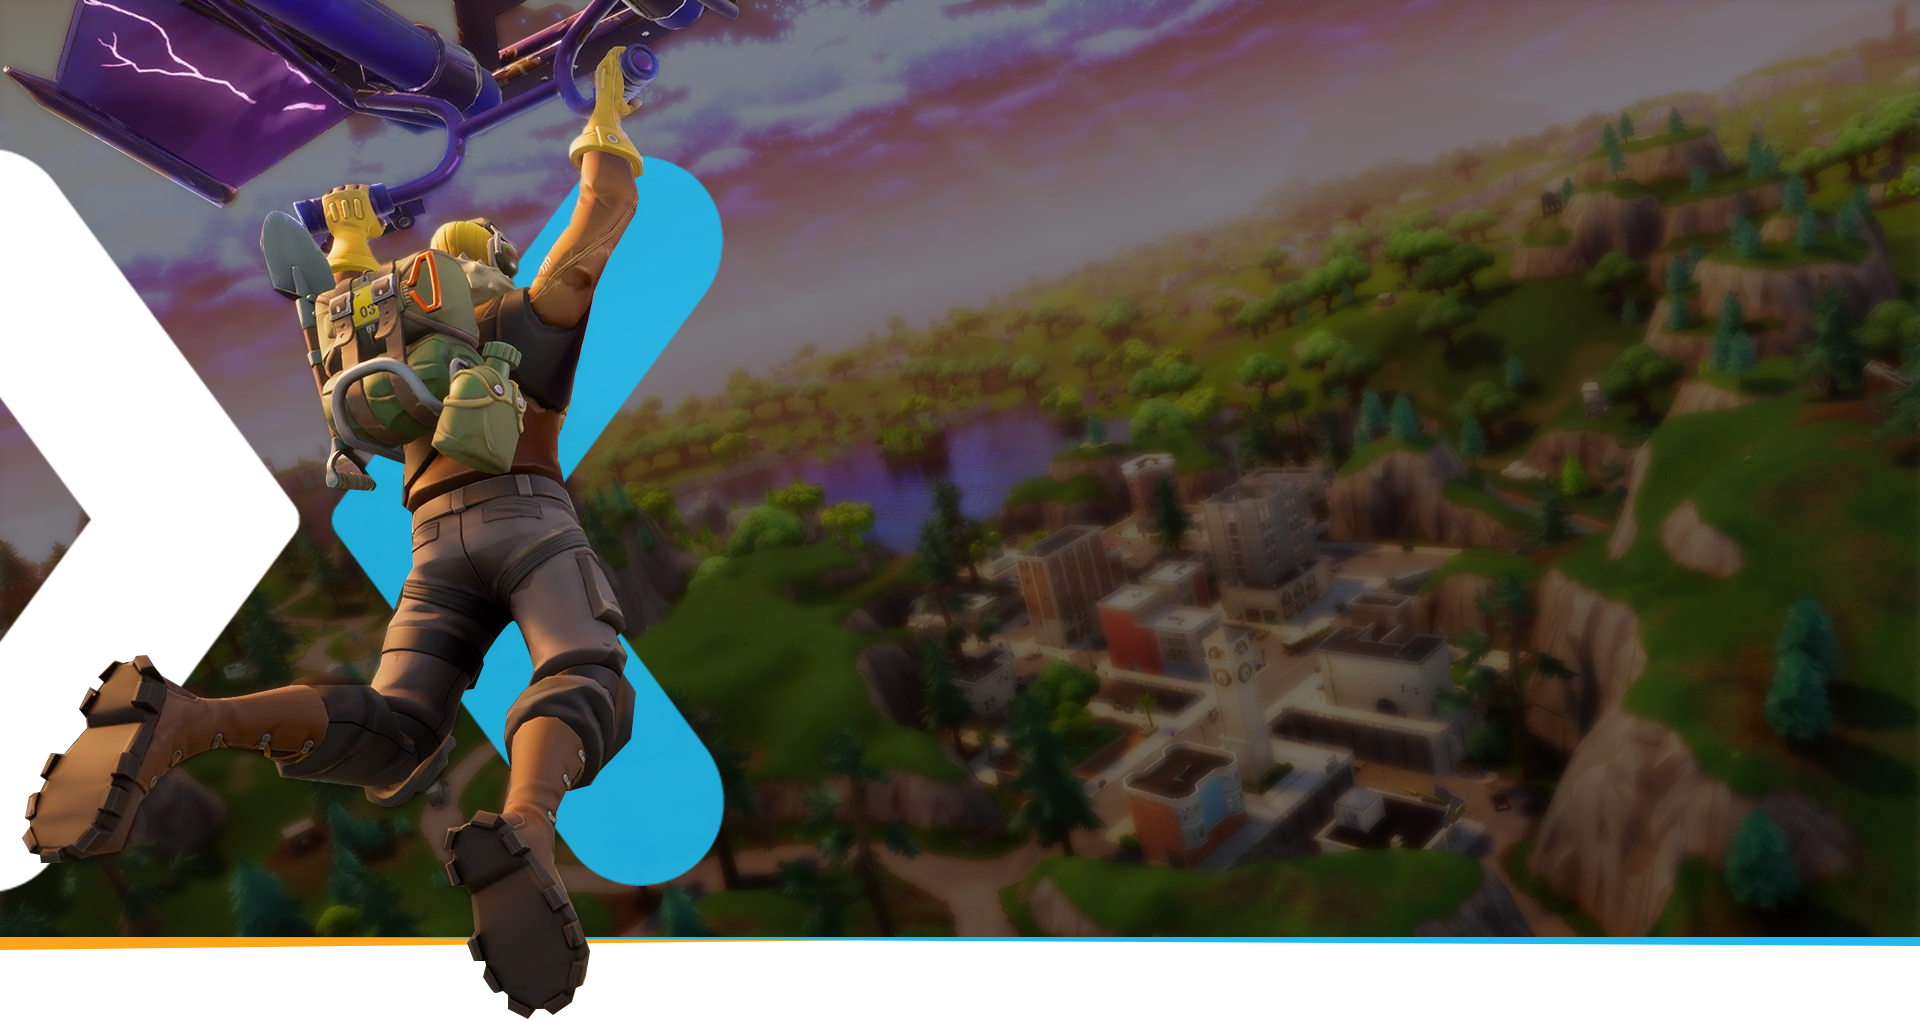 Backside view of a Fornite character holding onto a glider, about to land near a town